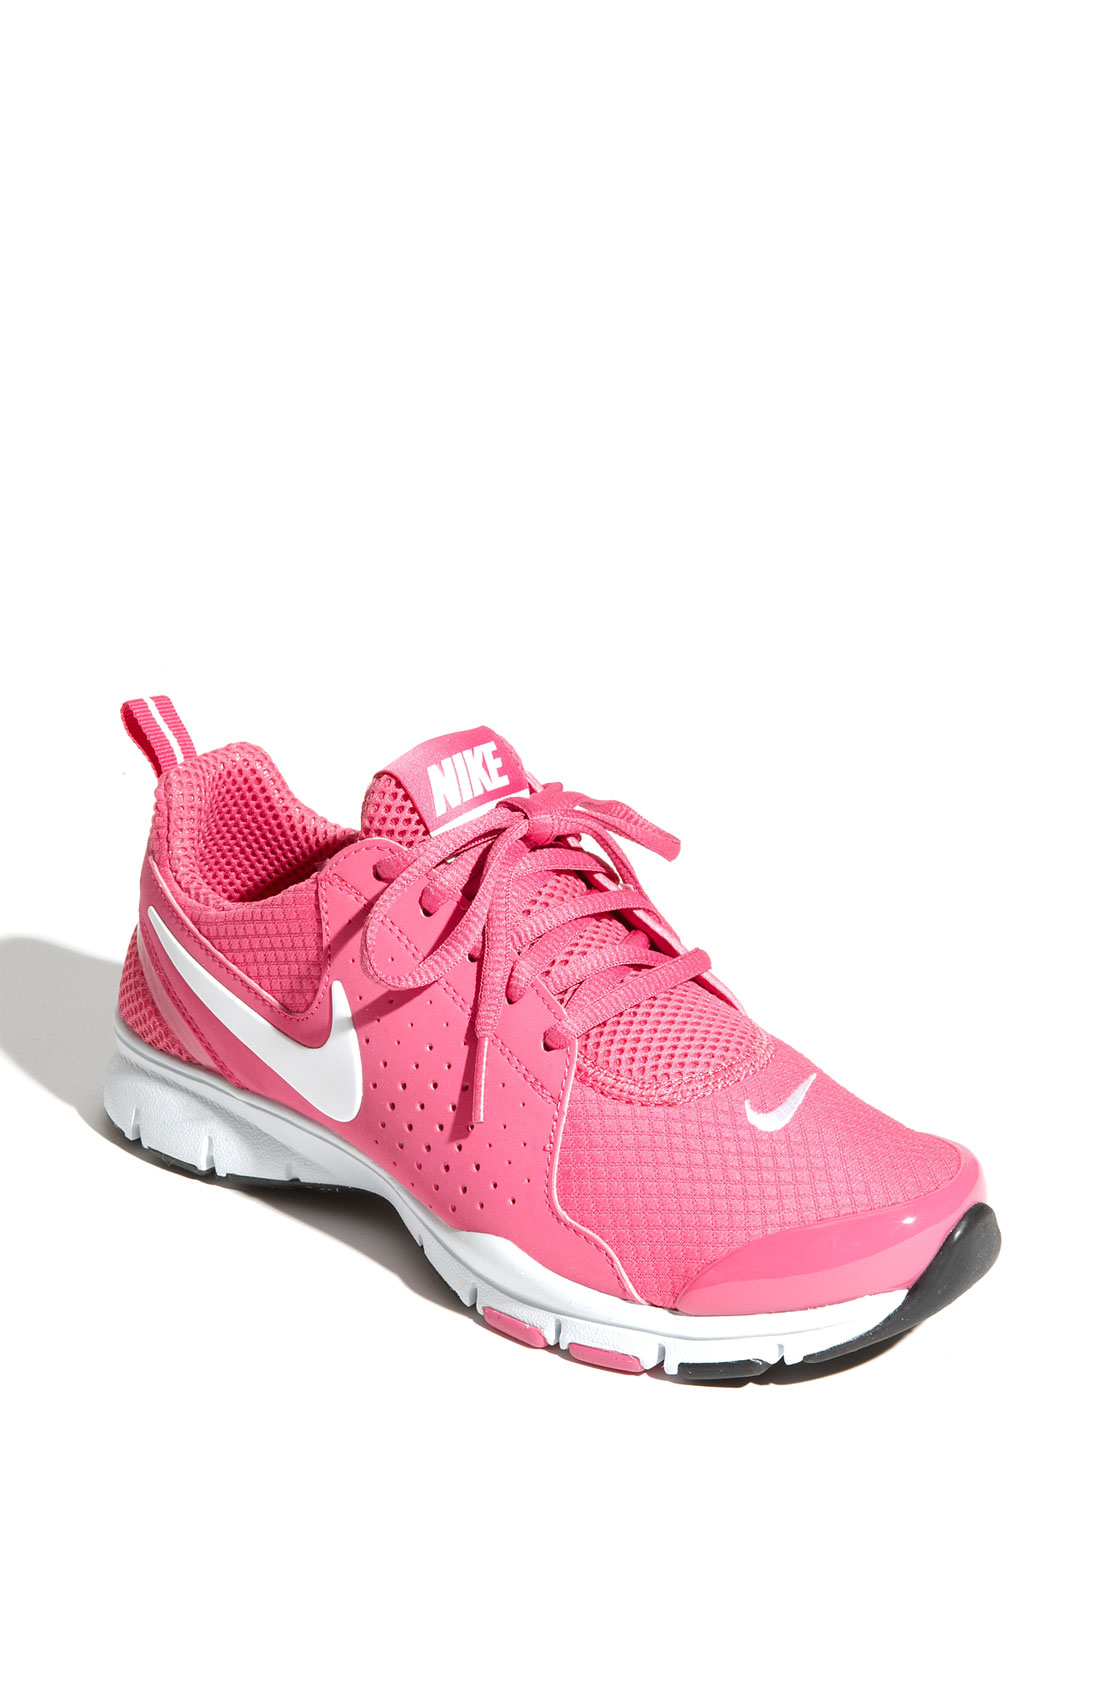 Model Sign In With Your Nikecom Account To Unlock This Product  If You Can Find The 2s On Sale Buy Those Over The 3s I Love These Shoes, They Are Incredible Comfortable And Stable For Training All Domains However, I Am Disappointed As One Of